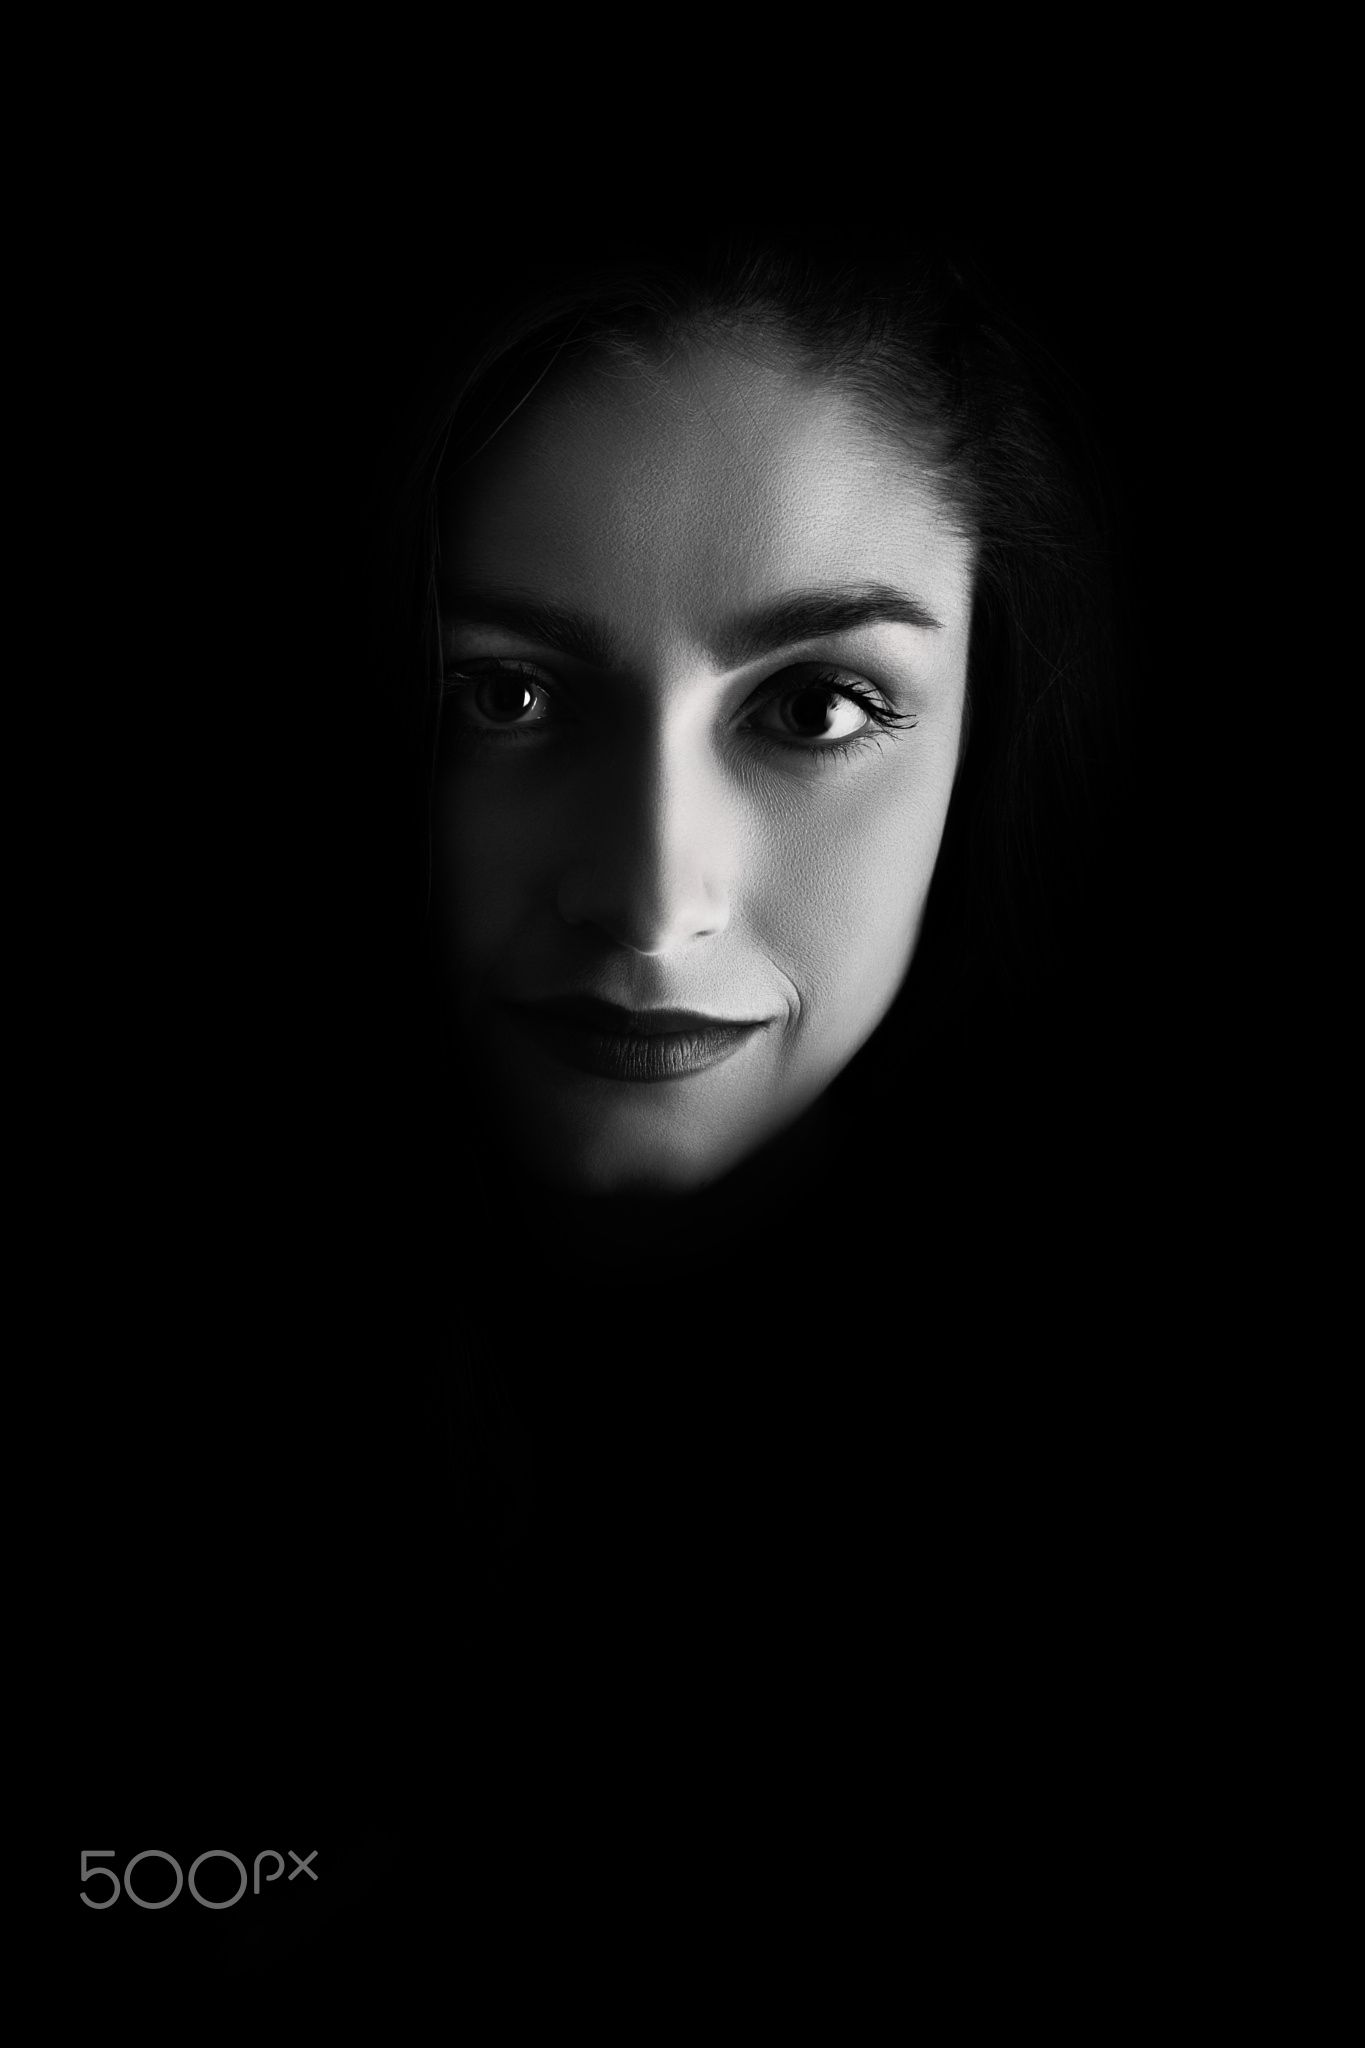 smiling woman face - smiling woman face on black background with copyspace, monochrome